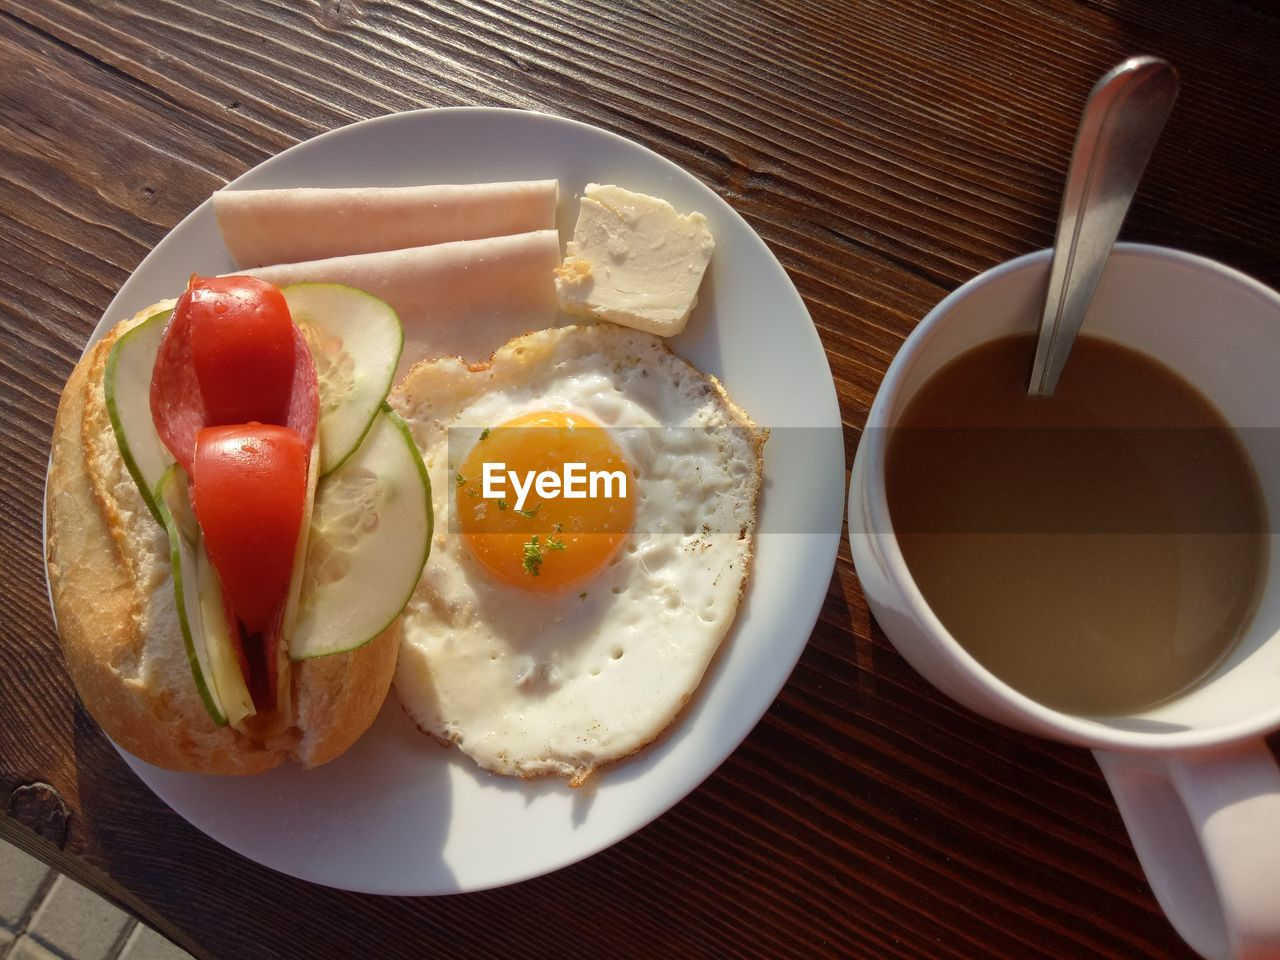 food and drink, food, egg, healthy eating, ready-to-eat, breakfast, table, freshness, meal, fried egg, fried, plate, wellbeing, drink, indoors, no people, bread, kitchen utensil, cup, tomato, egg yolk, sunny side up